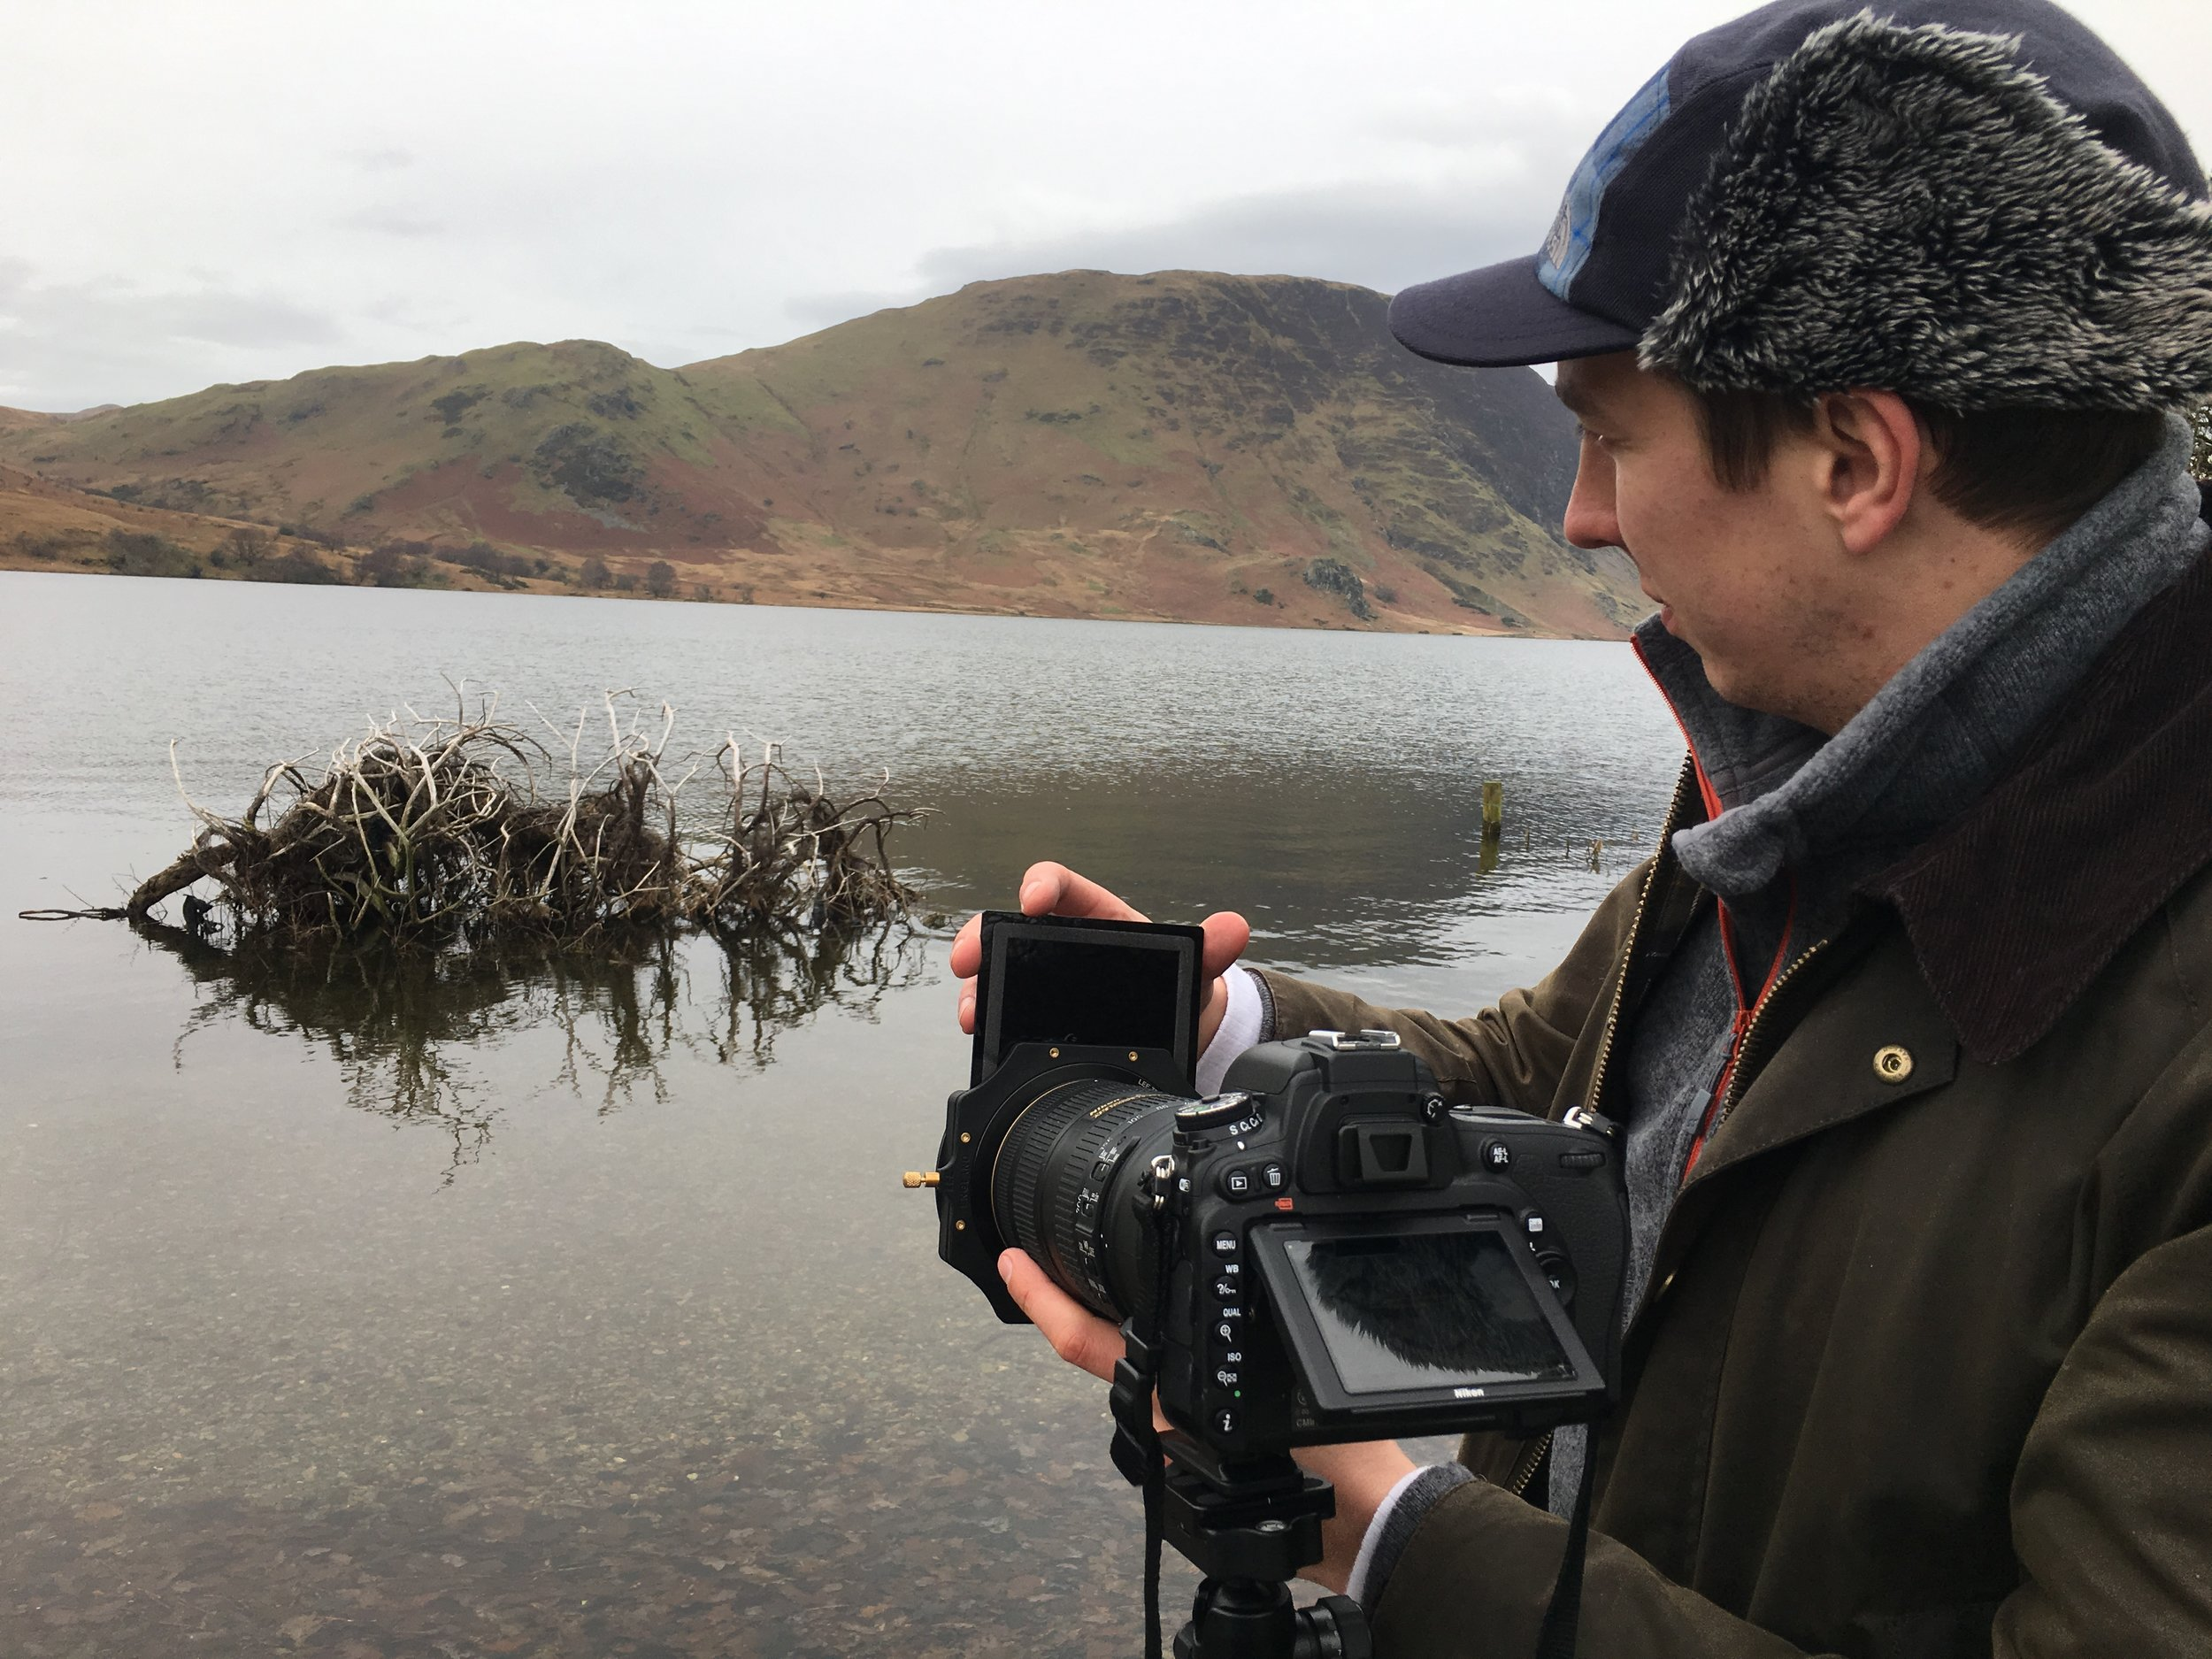 Setting up by Crummock Water